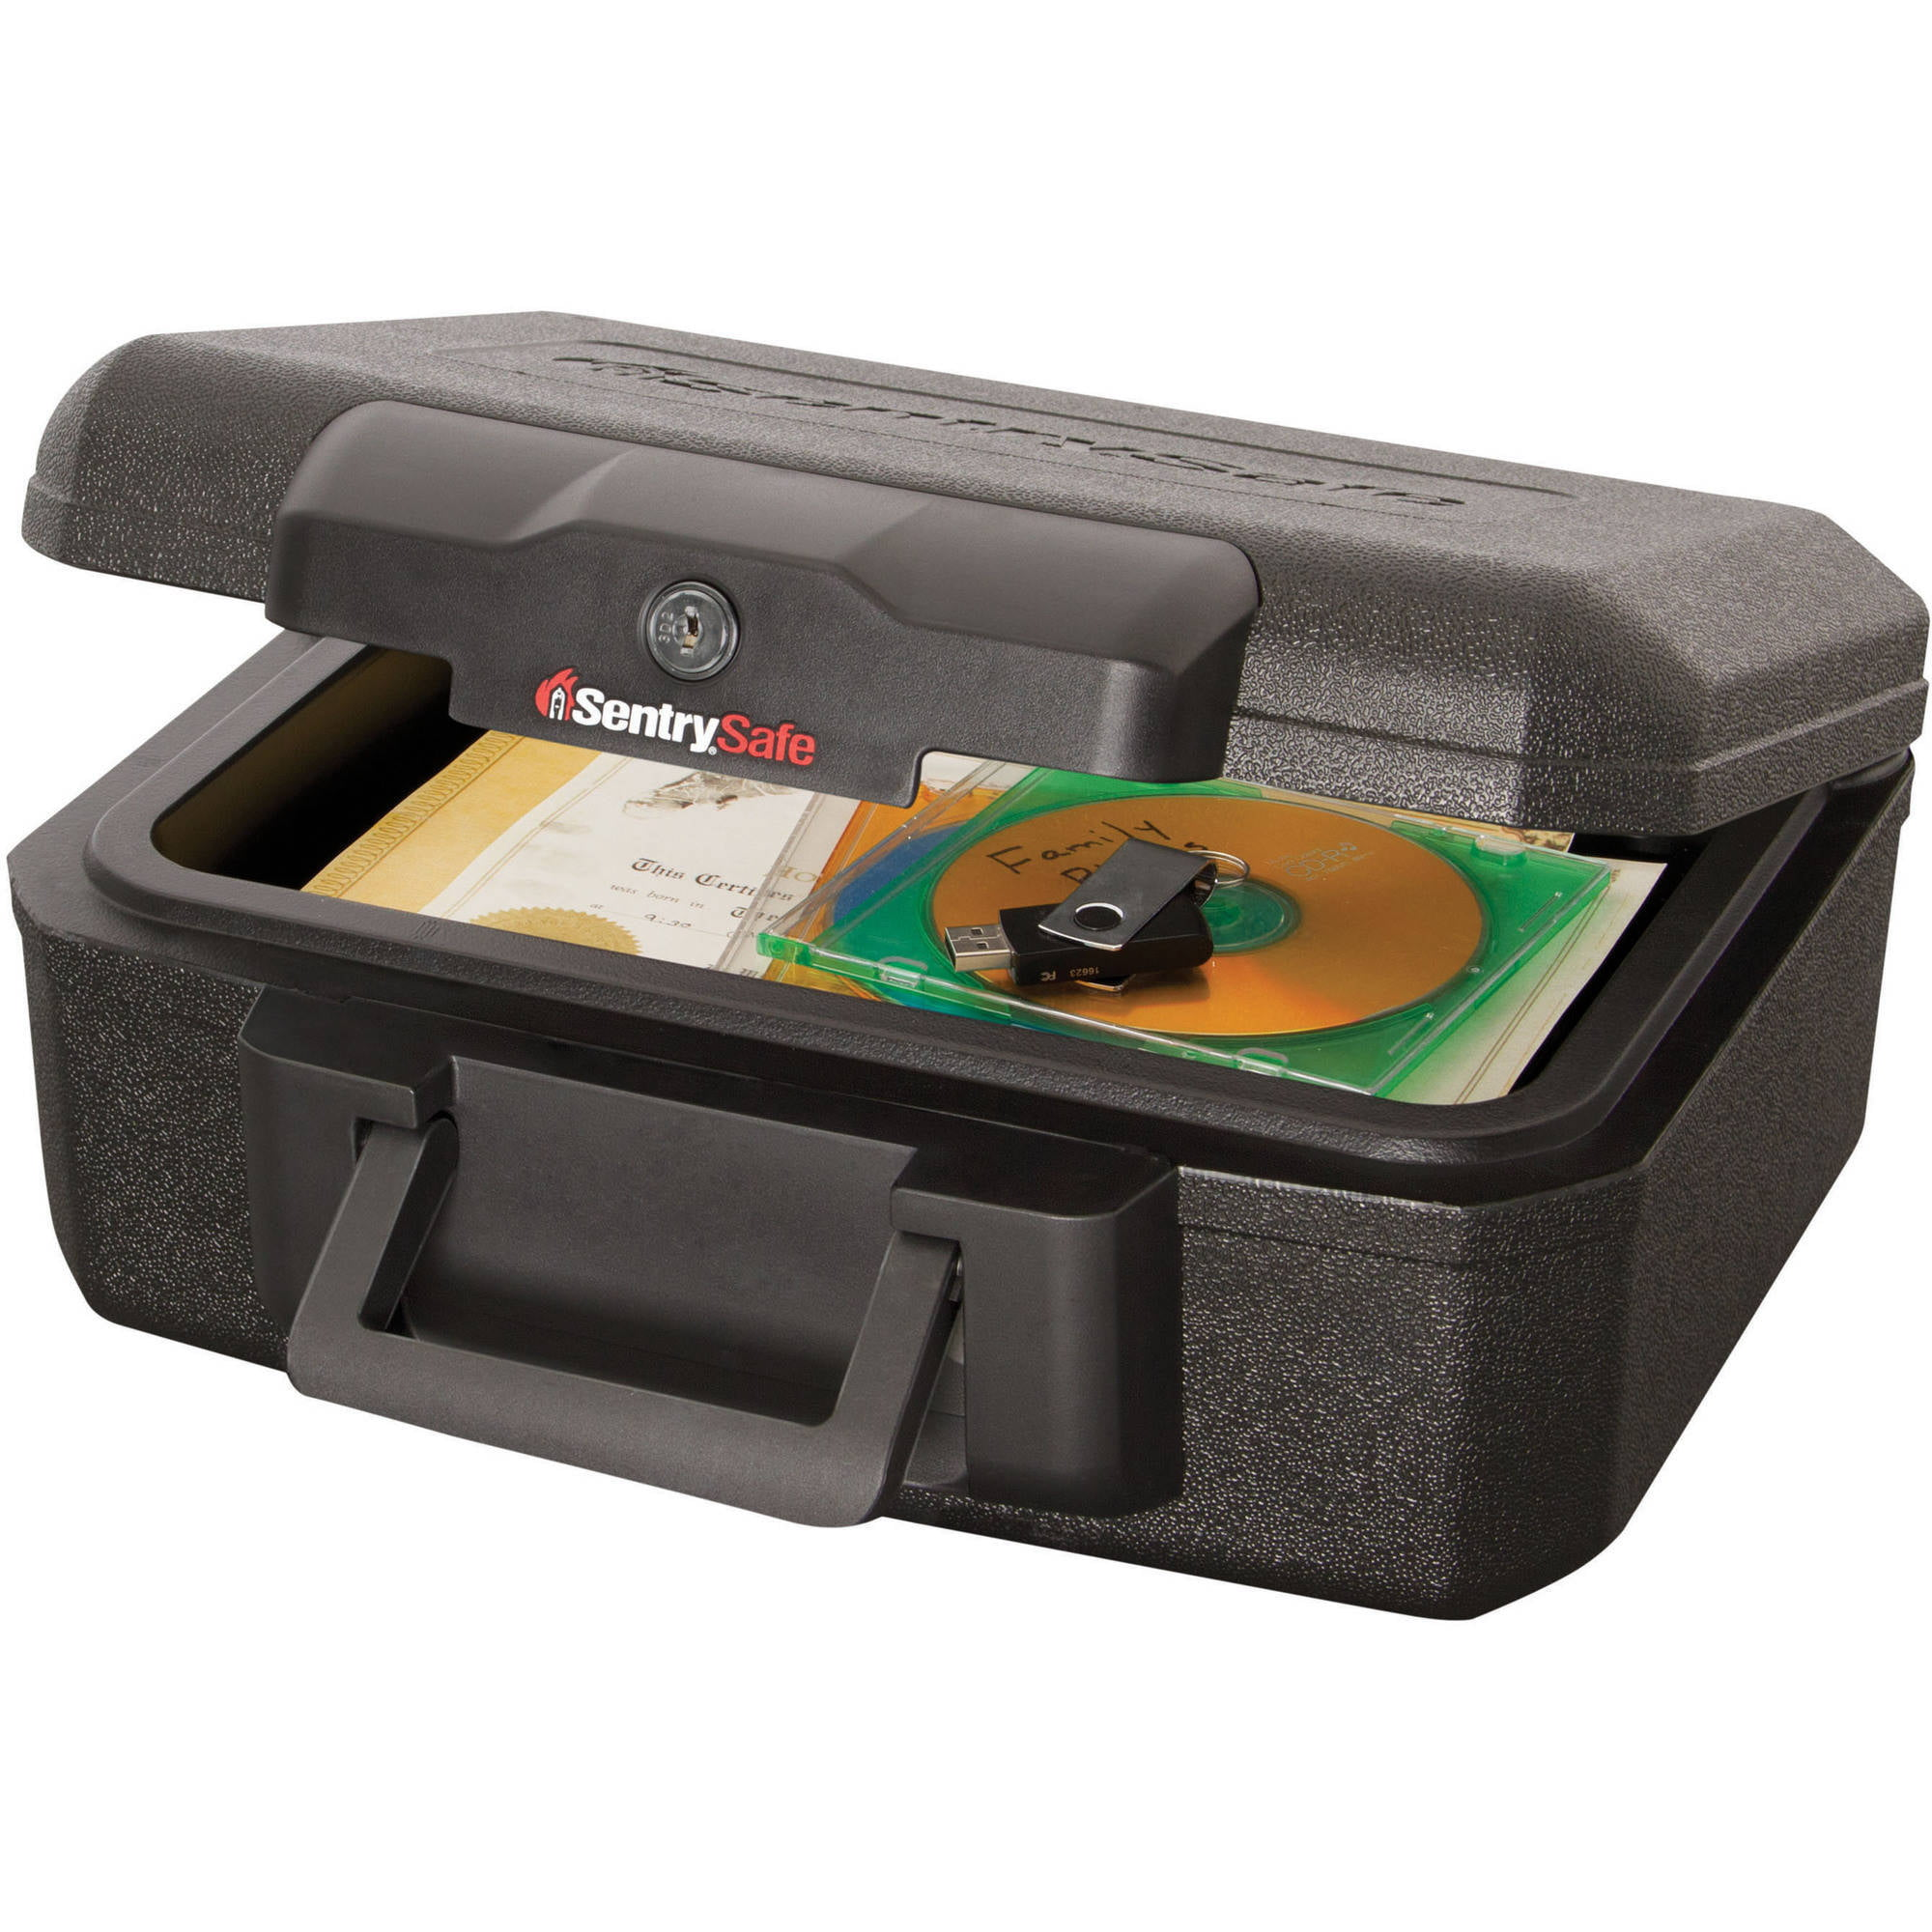 sentrysafe 1200 fire safe lock box - walmart